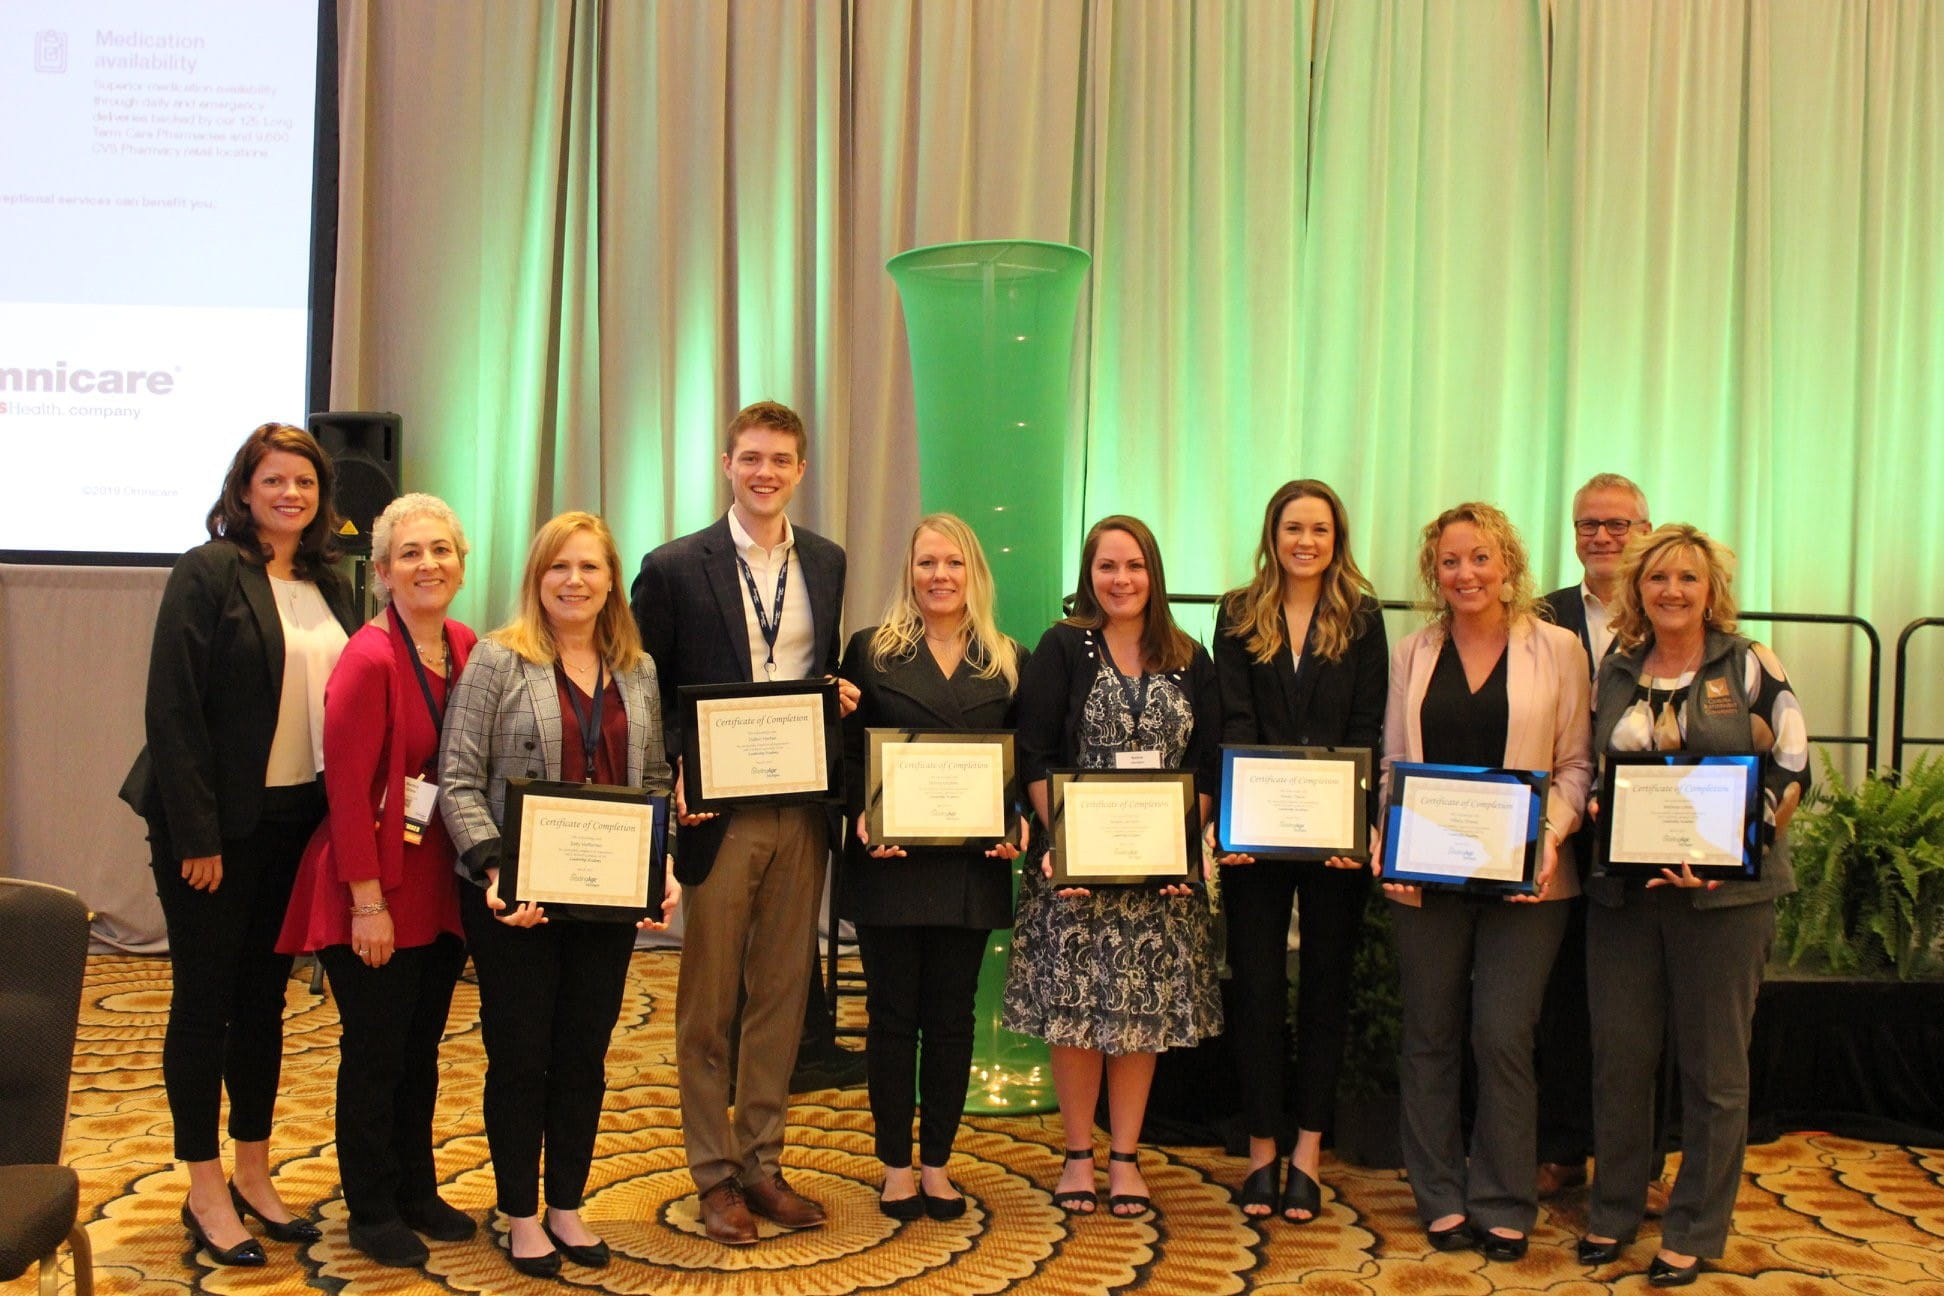 Sally Heffernan and members of the 2019 LeadingAge Michigan Leadership Academy program showing off their certificates